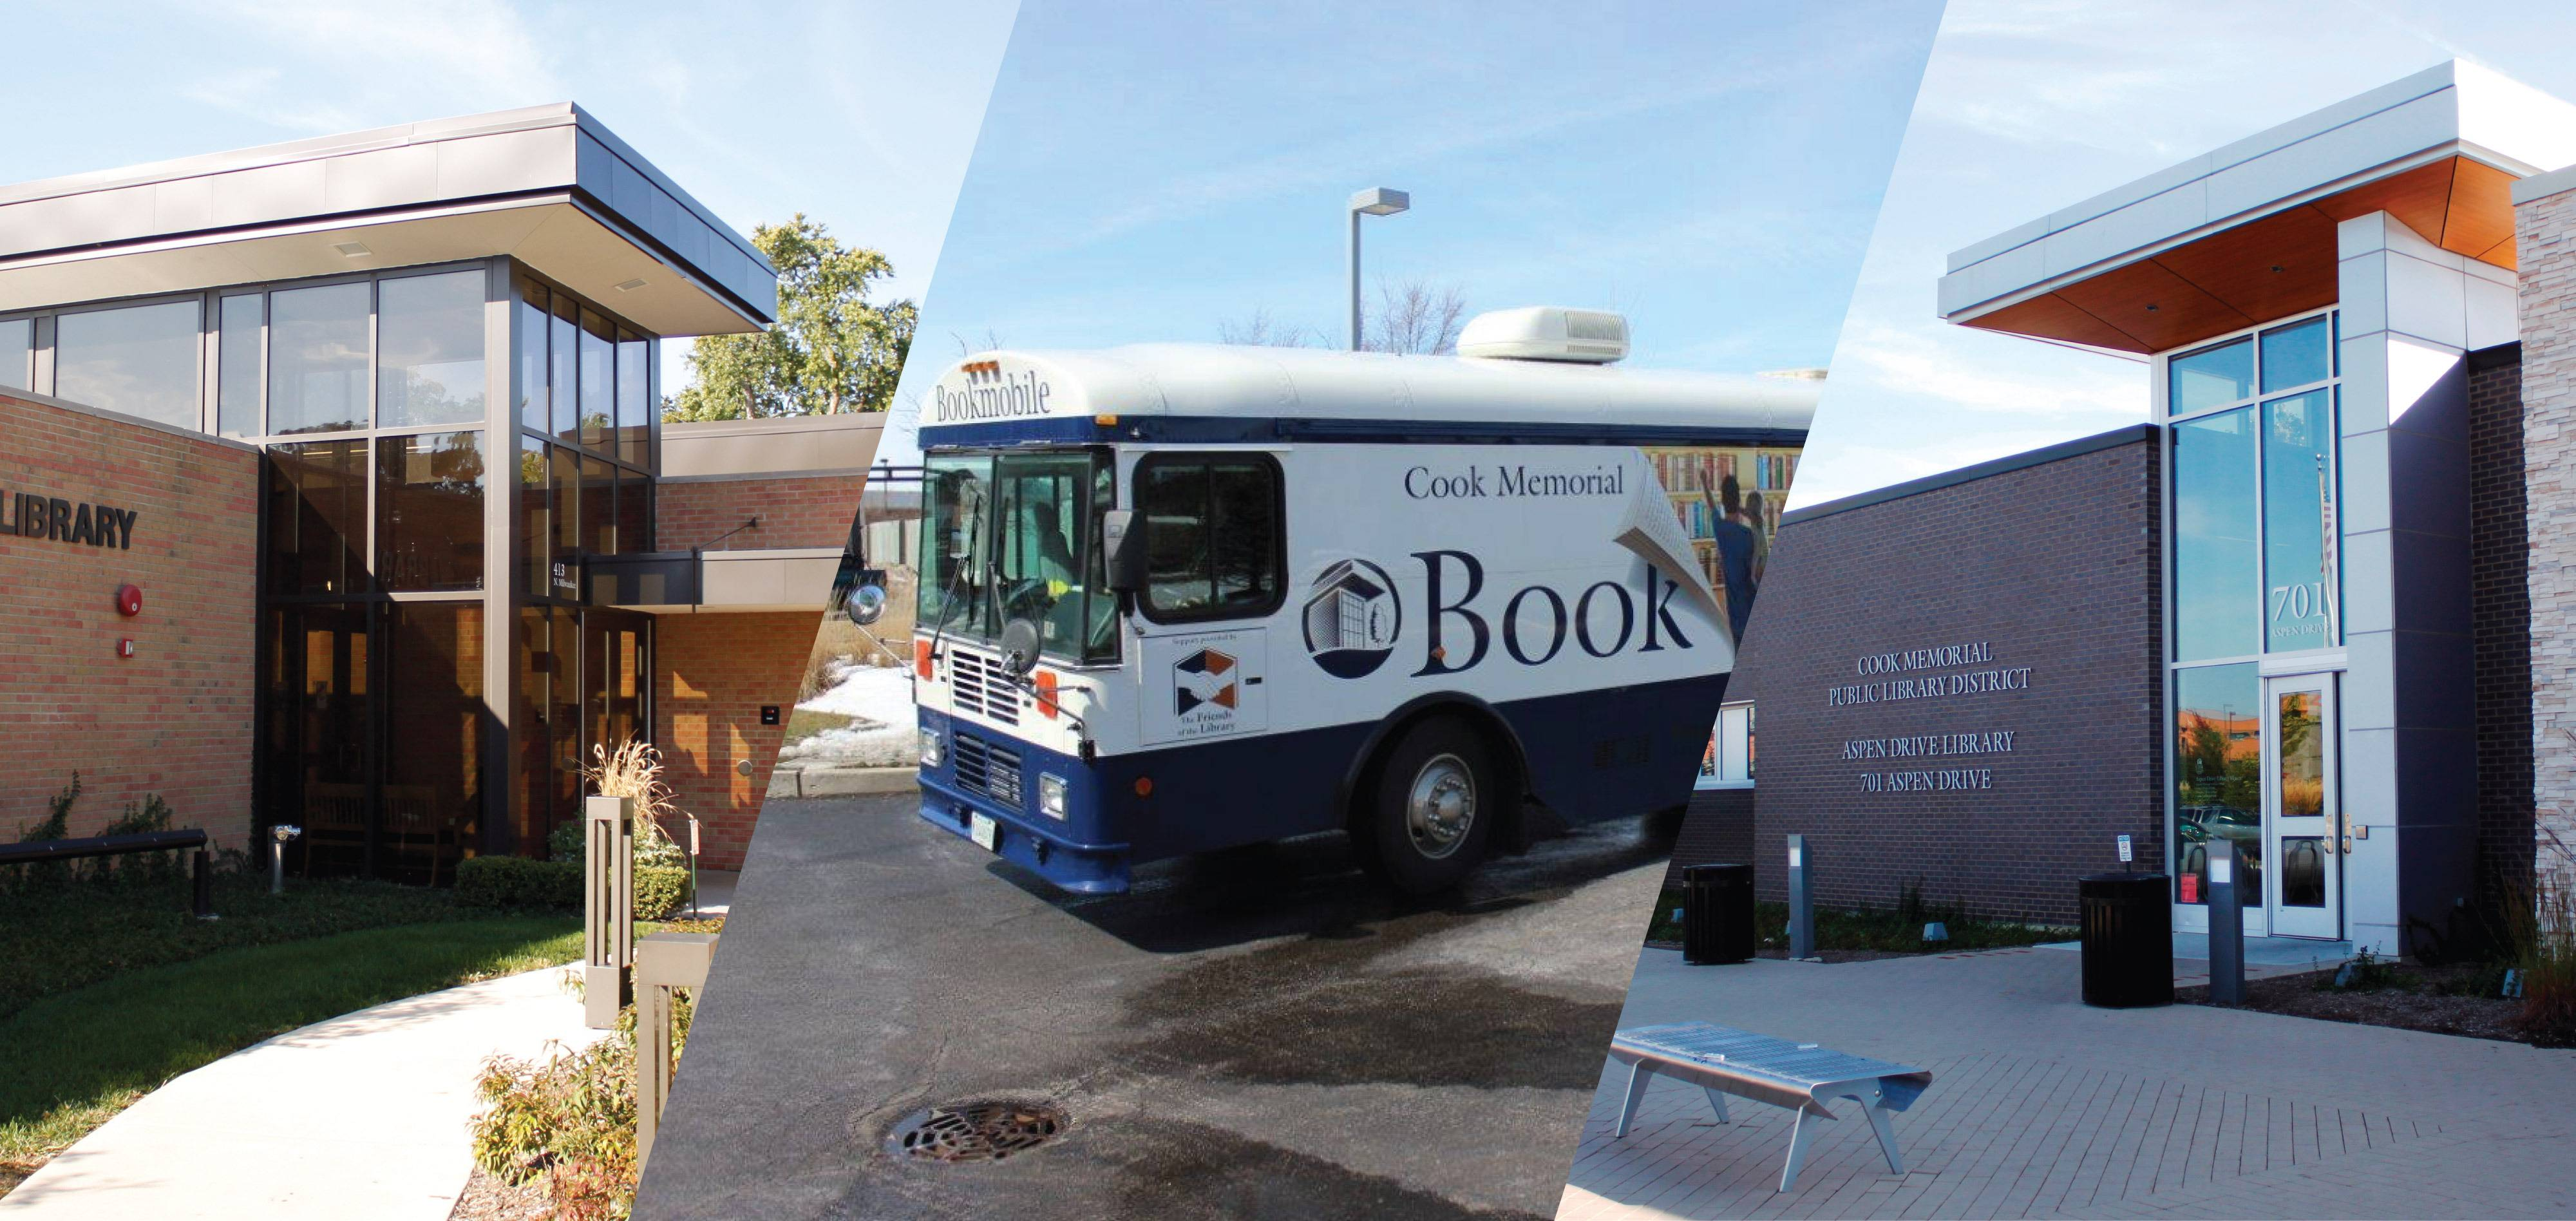 Cook Memorial Public Library District is served by locations in Libertyville and Vernon Hills, as well as a bookmobile.